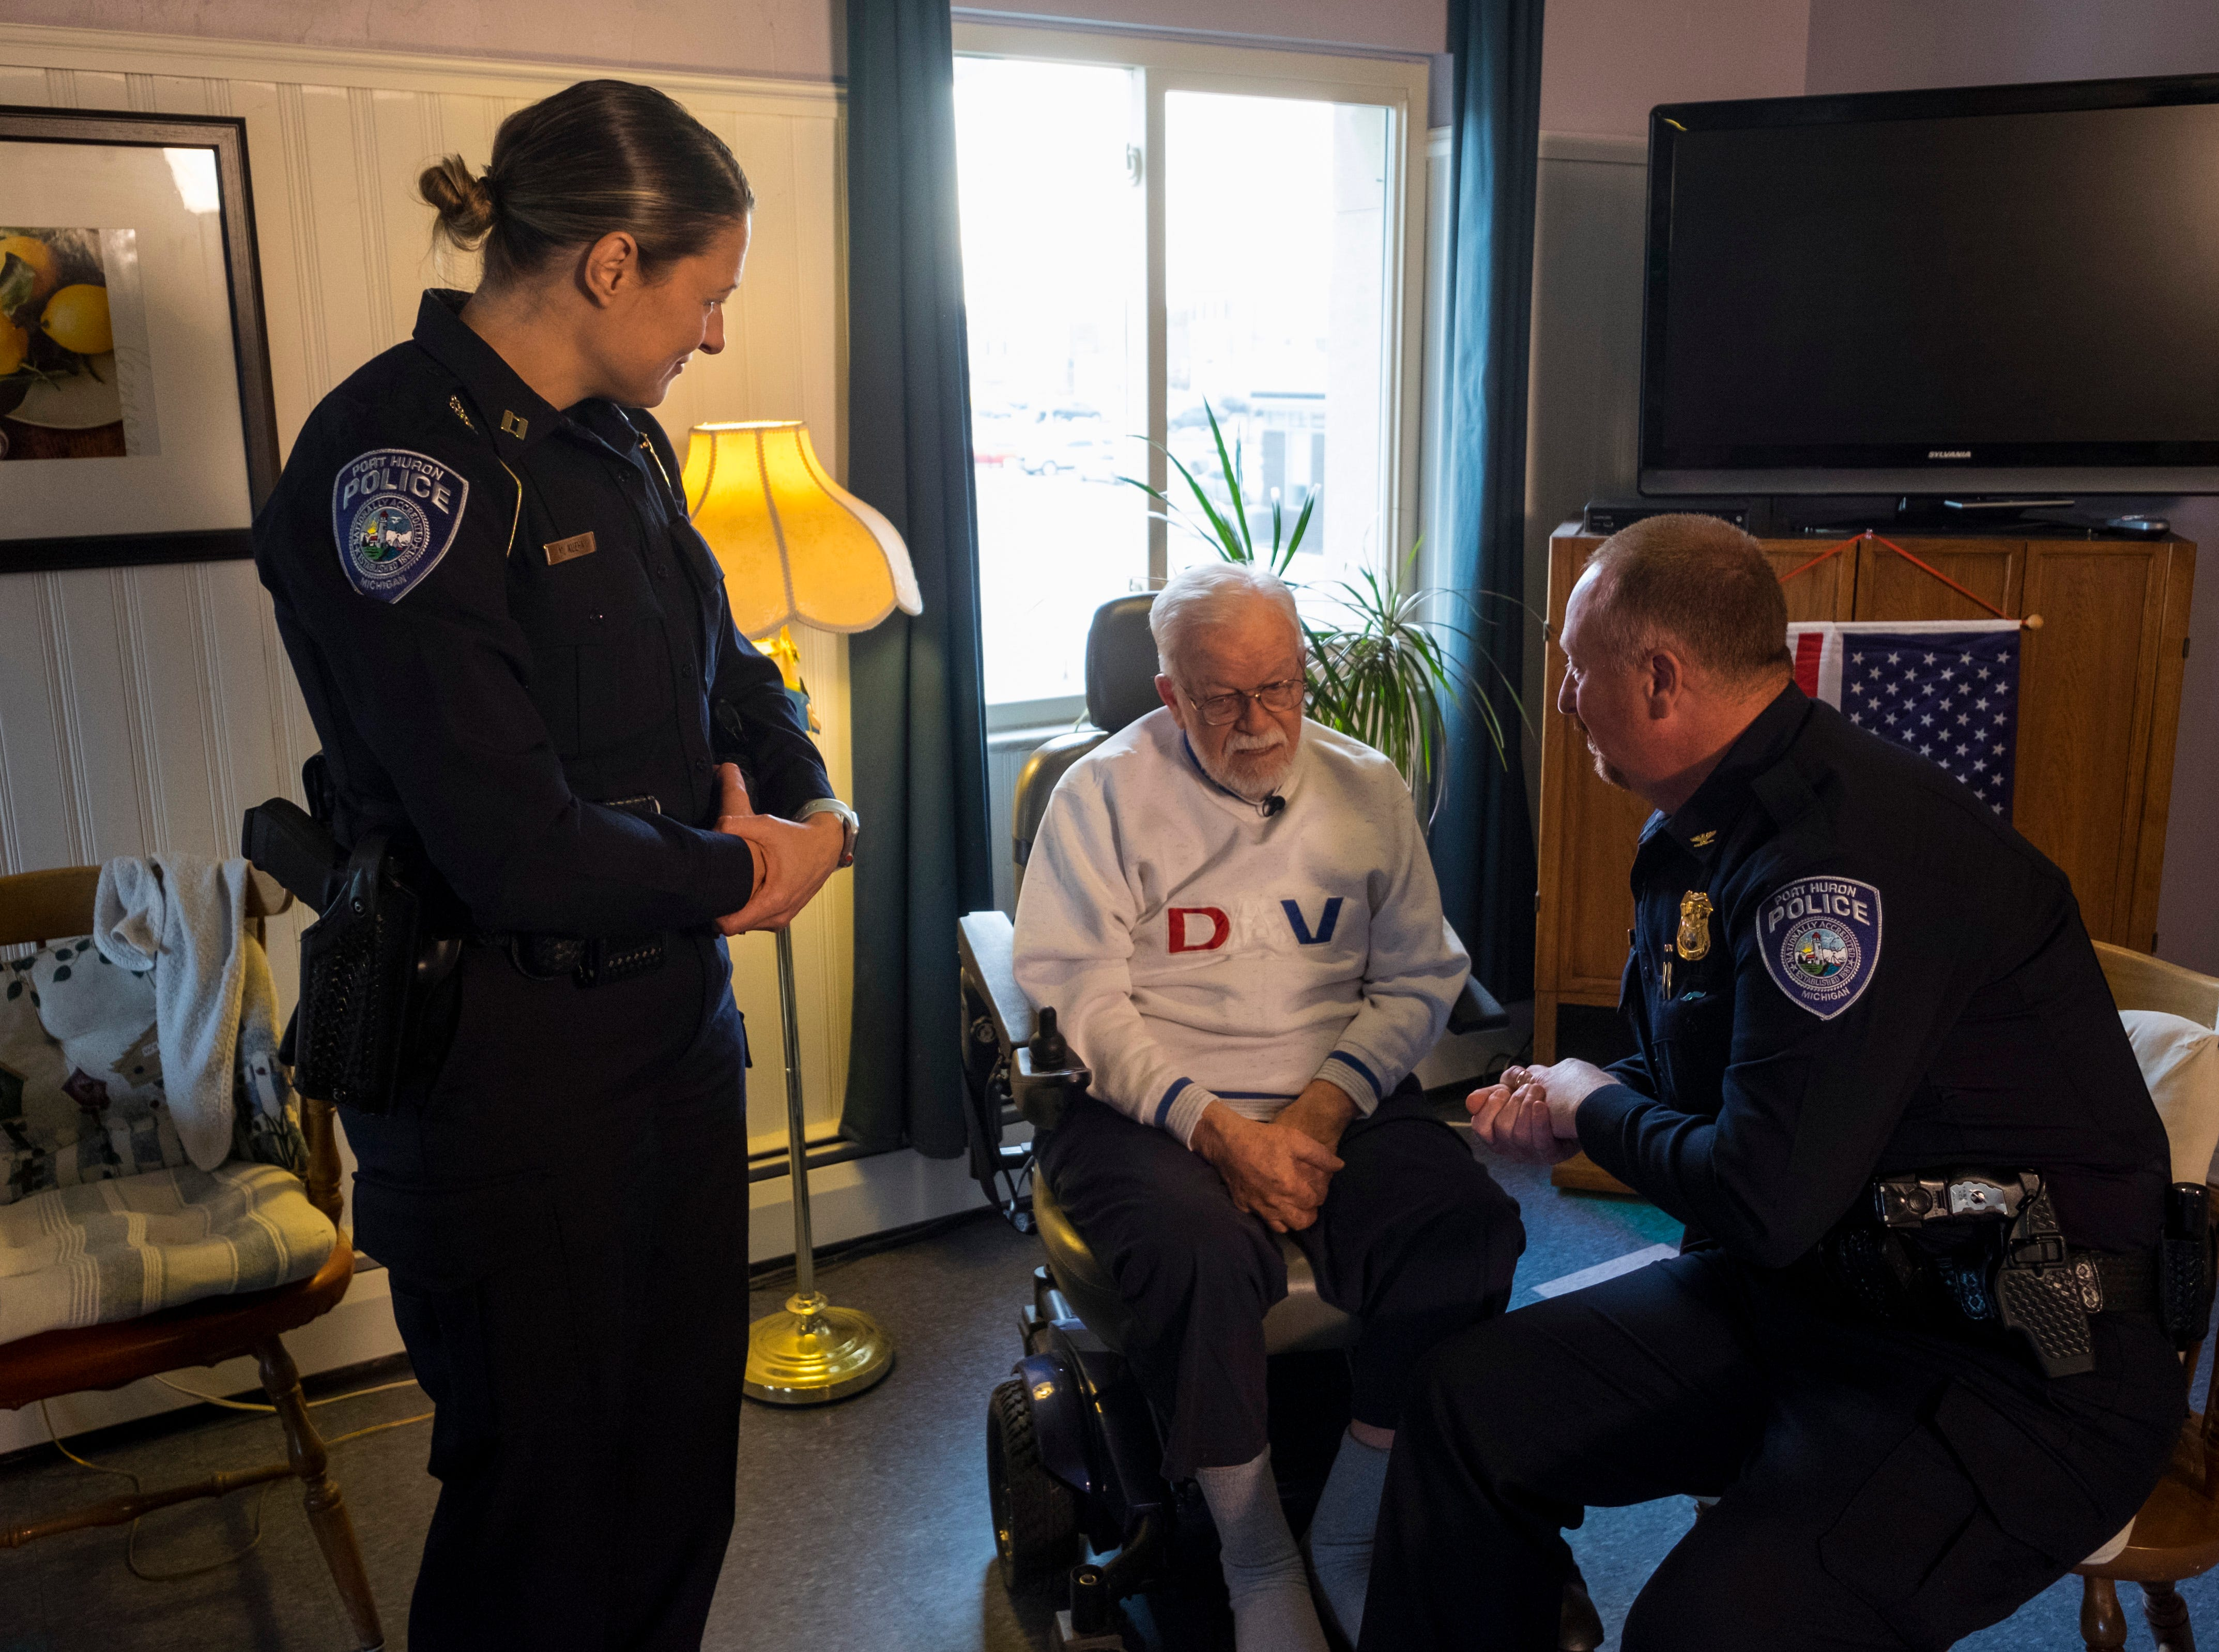 William Turney, center, speaks with speaks with Port Huron Police Chief Joseph Platzer, right, and Capt. Marcy Kuehn Monday, Nov. 19, 2018, before a recognition ceremony. During the ceremony, Turney was presented a plaque, a challenge coin and two of the department's patches.